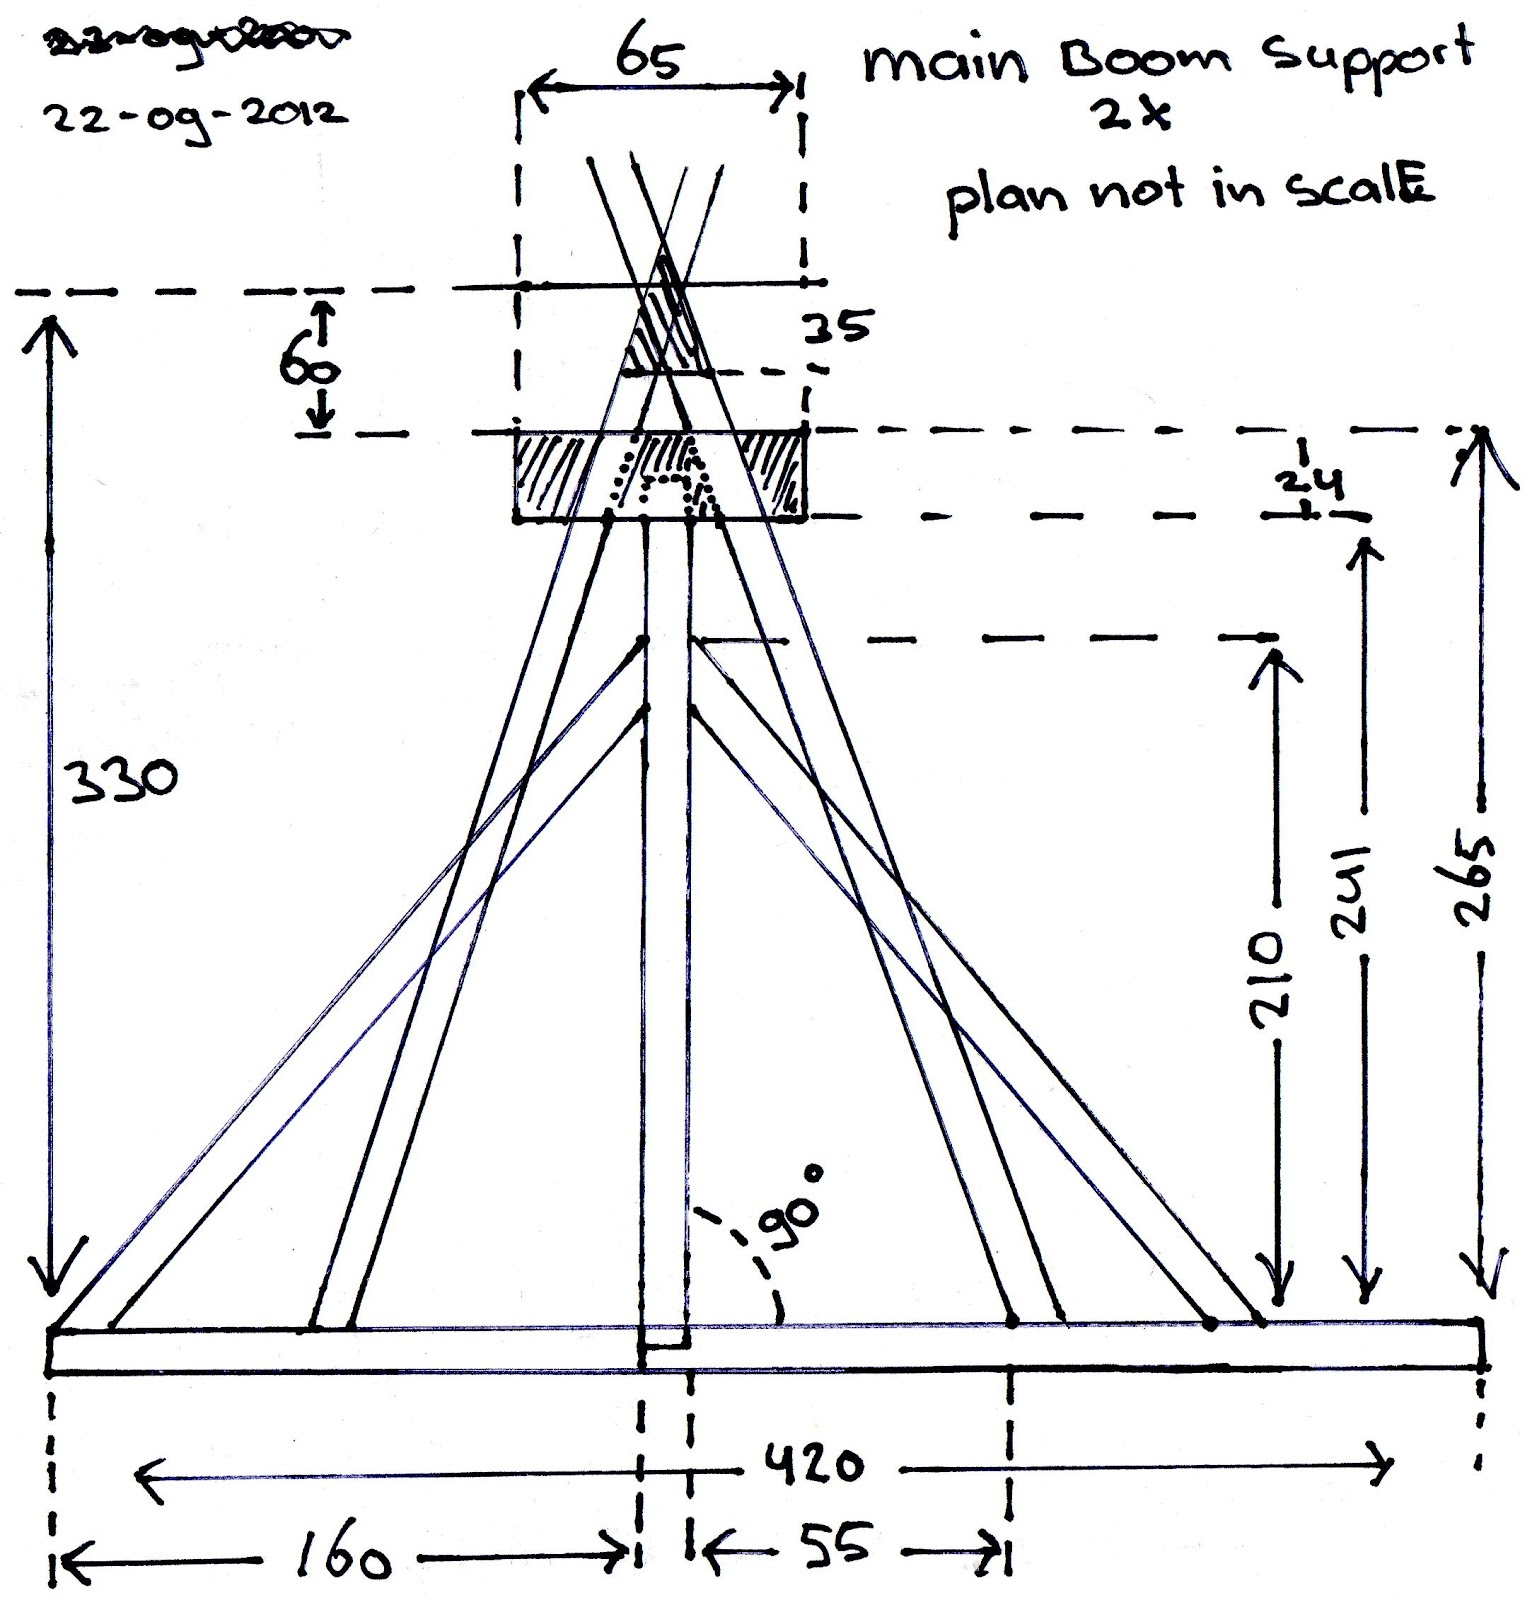 Trebuchet Main Supports 2x My Trebuchet Model Blog How